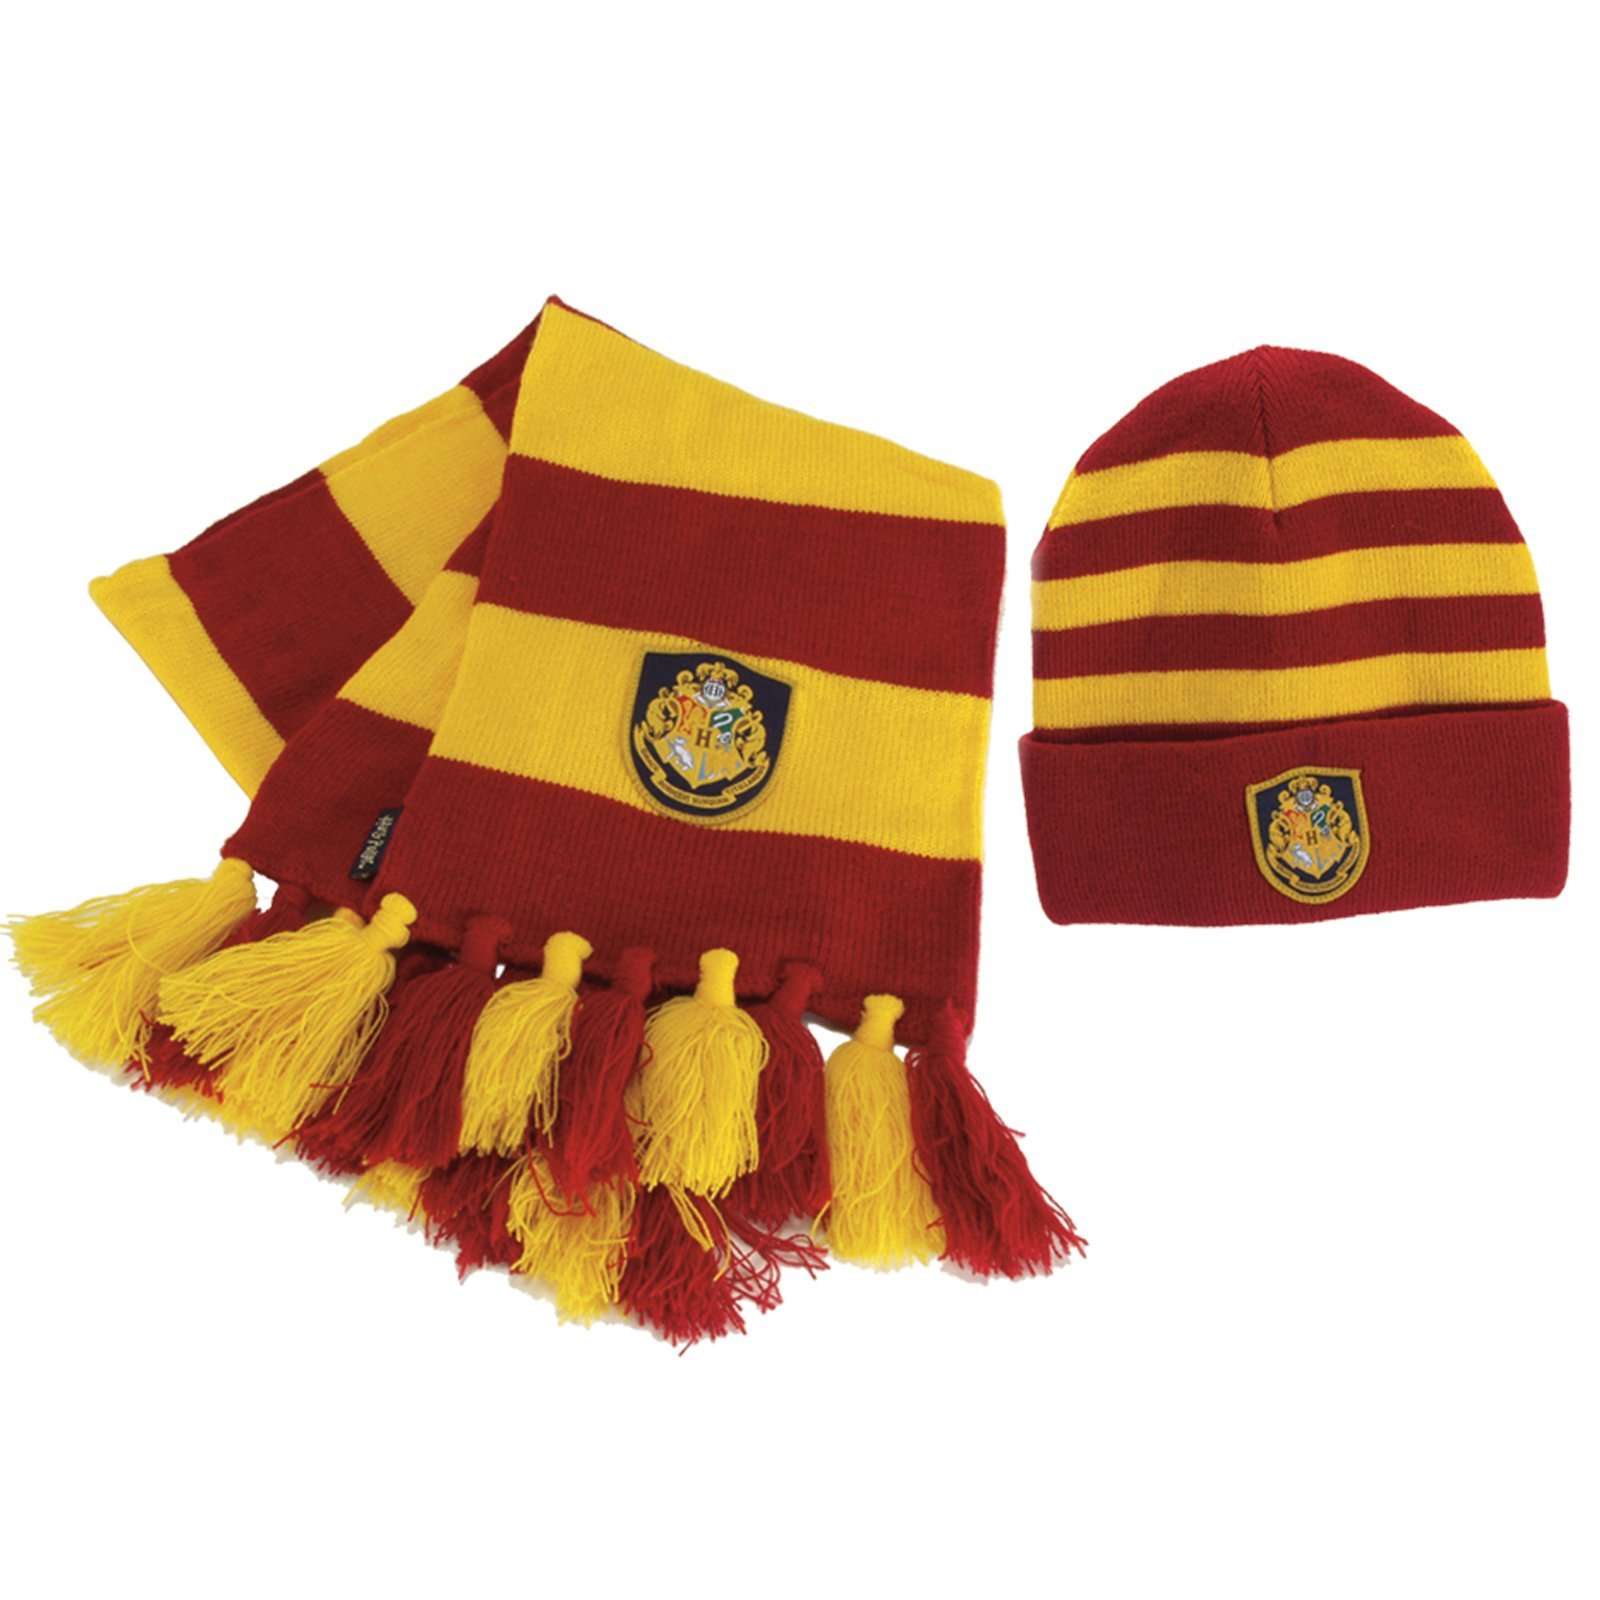 Hogwart's Knit Hat and Scarf